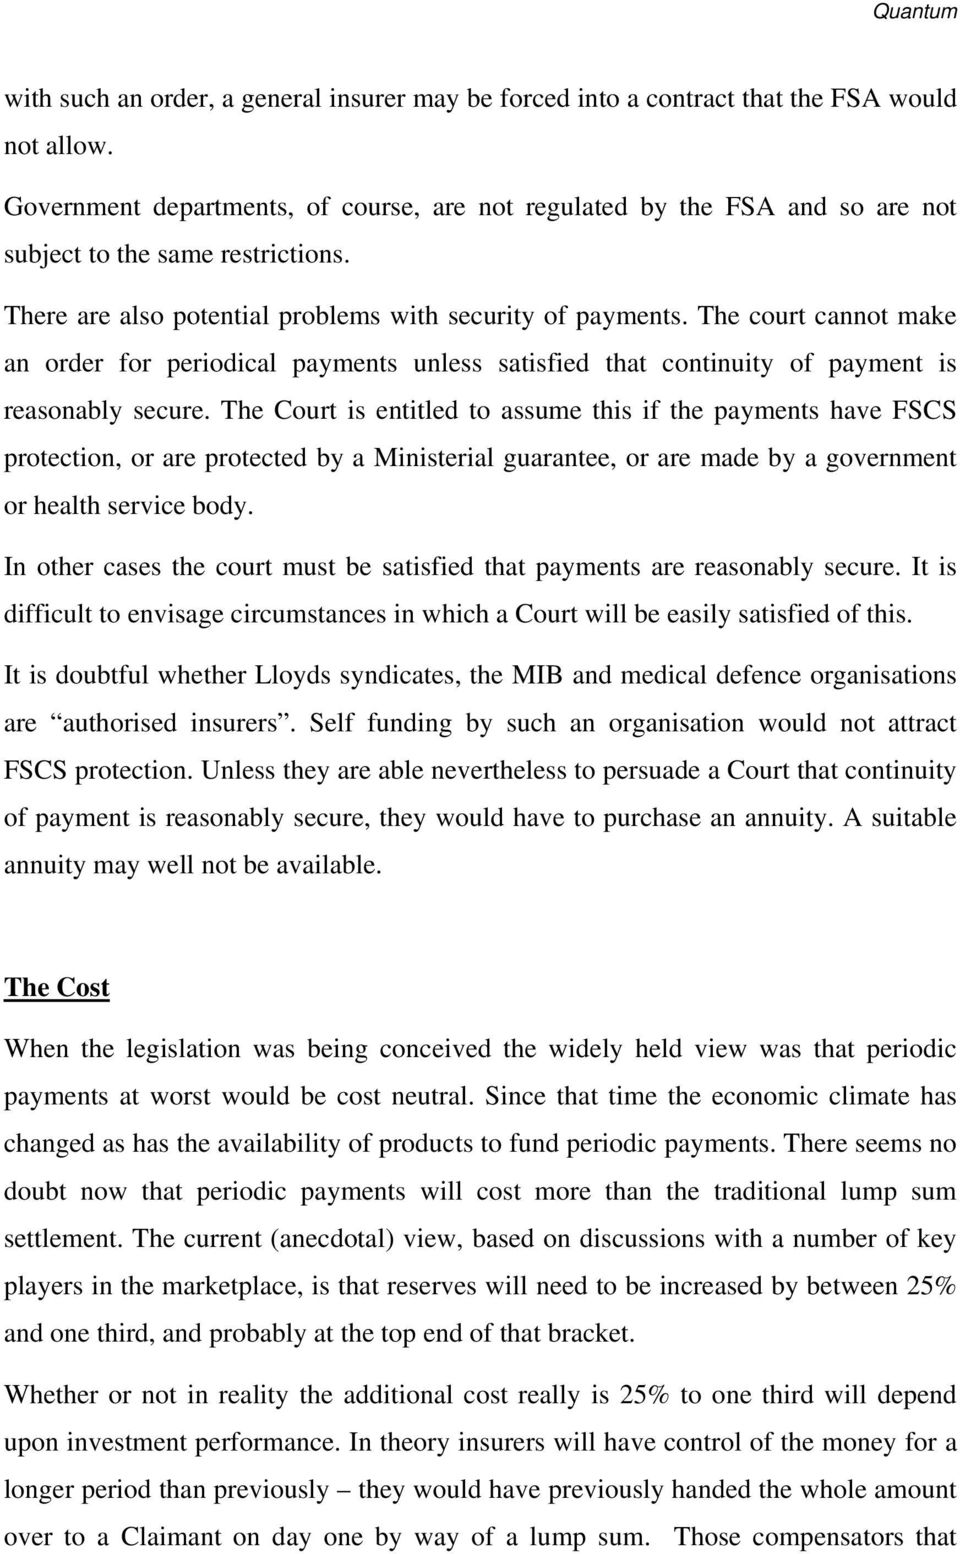 The court cannot make an order for periodical payments unless satisfied that continuity of payment is reasonably secure.